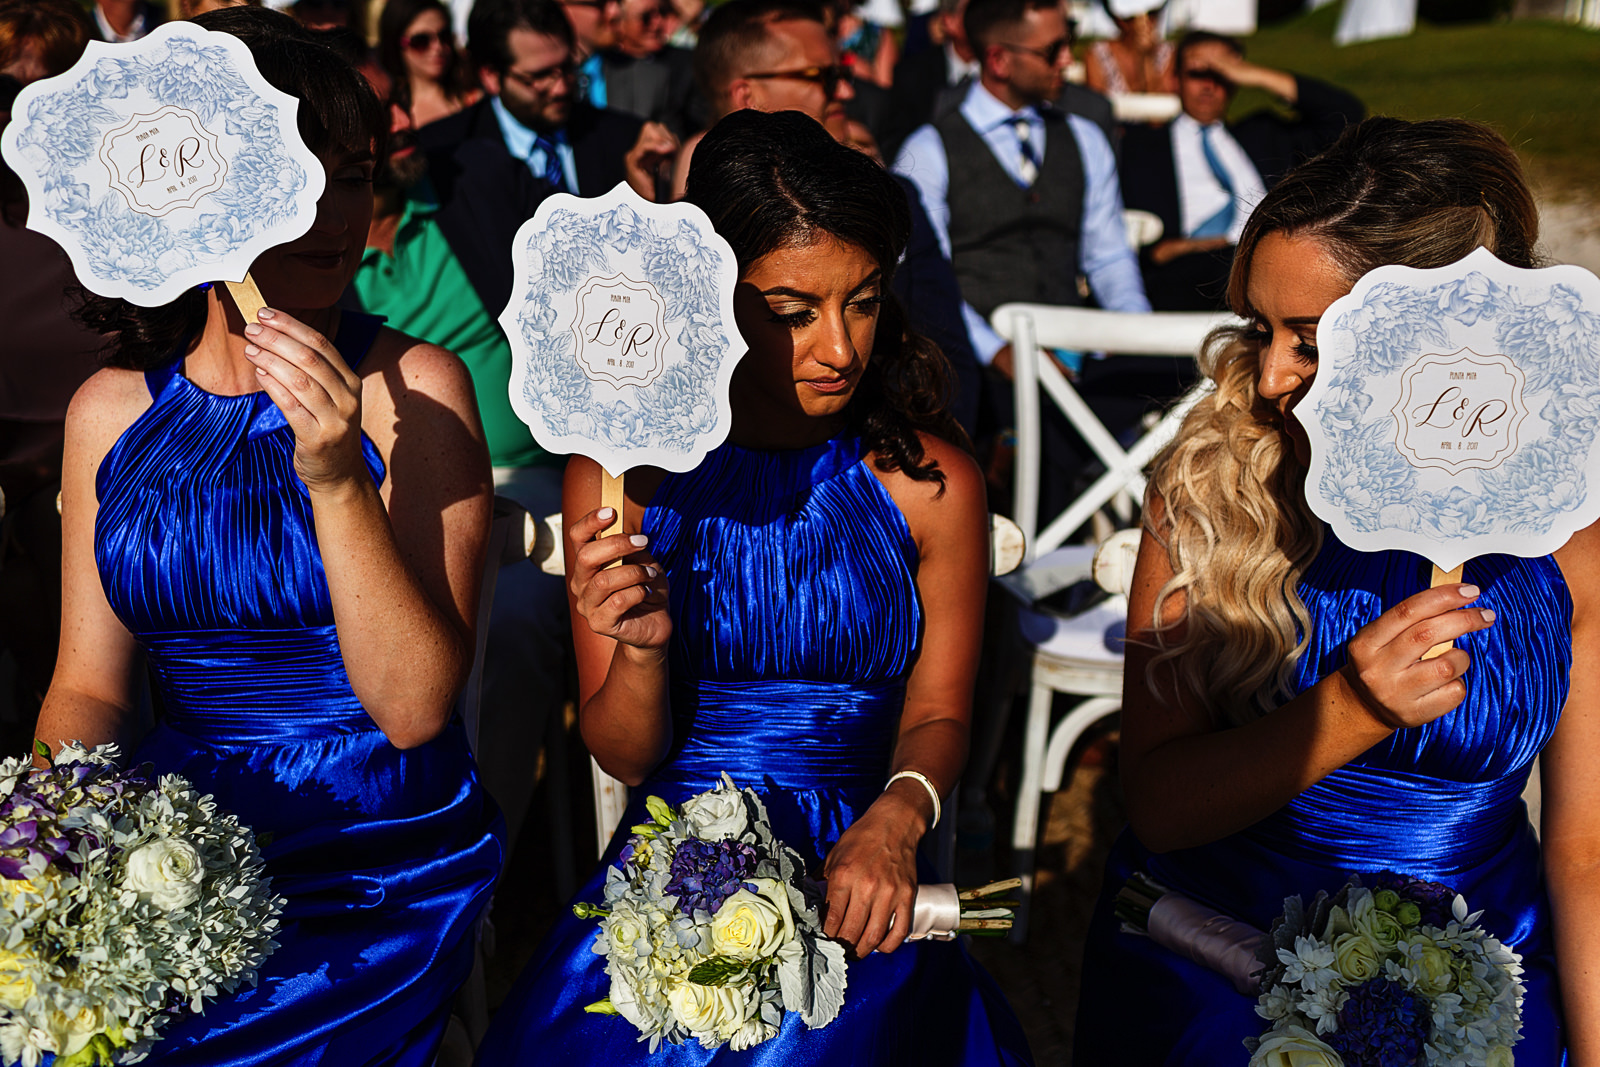 Light and heat from the sun hits hard on the bridesmaids during the wedding ceremony on the beach at the St. Regis Punta Mita Resort.